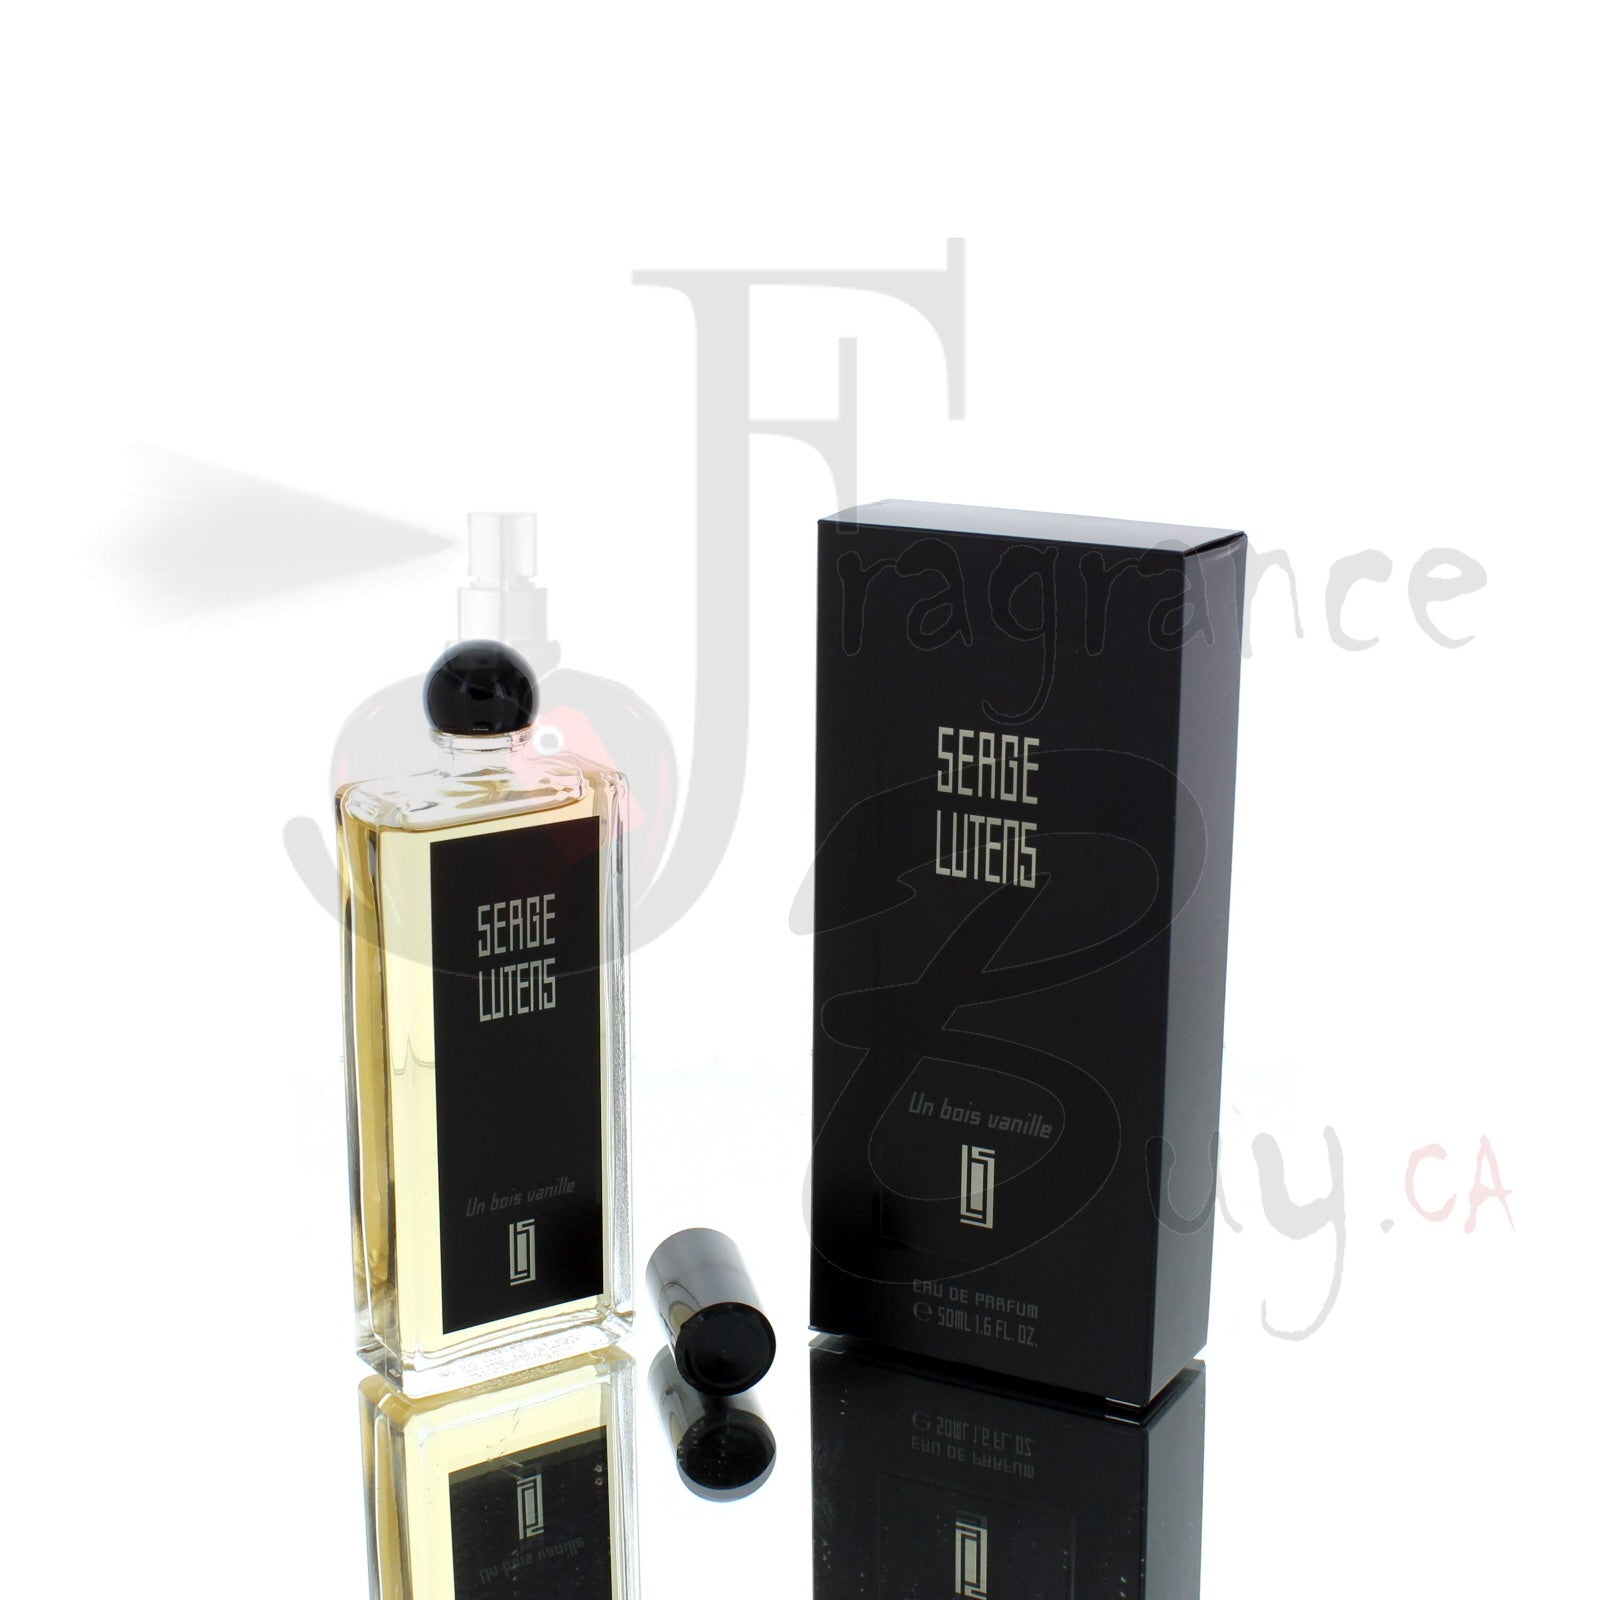 Serge Lutens Un Bois Vanille For Man/Woman